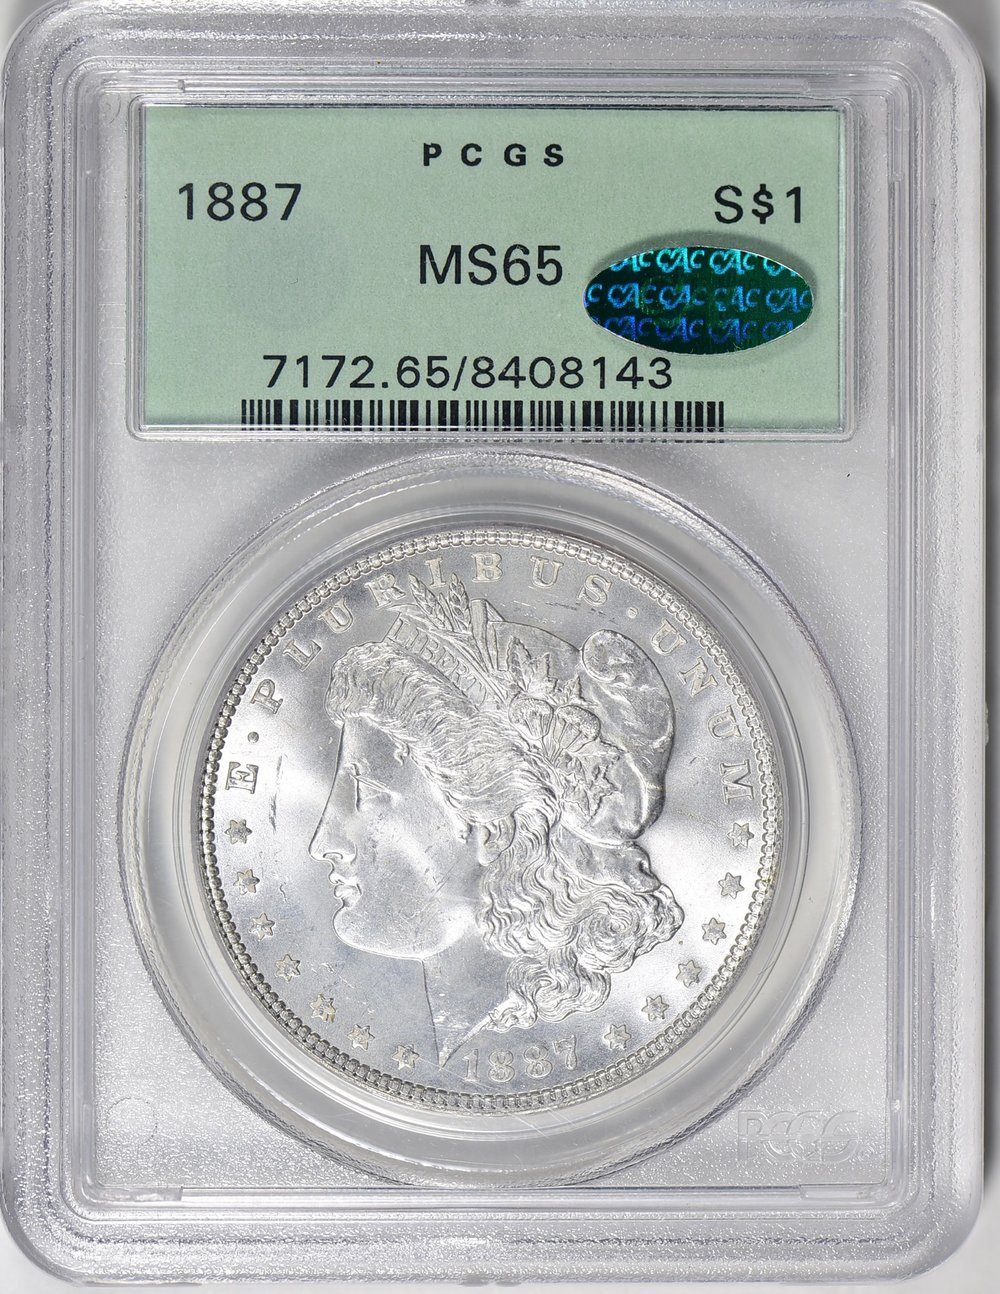 1887 MS65 CAC OGH - Acquired GreatCollections 9/16/18. Continuing to work slowly on a Morgan CAC | OGH collection. This has a very clean cheek for a MS65. It is surprising how many CAC OGH Morgan's are still out there.